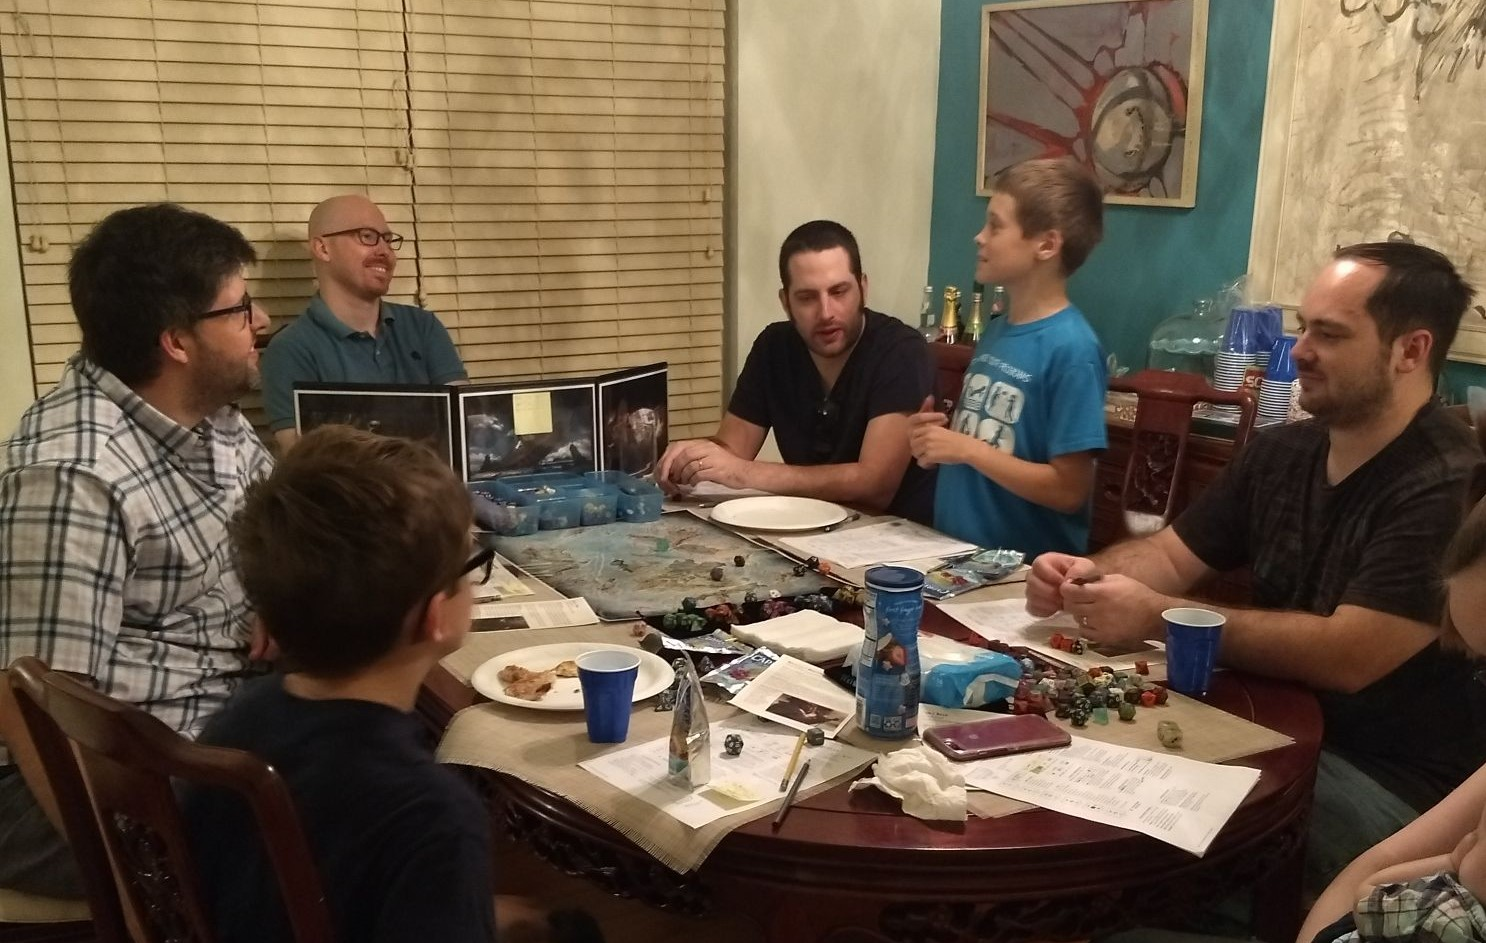 Gamers sitting around a table and playing Dungeons & Dragons